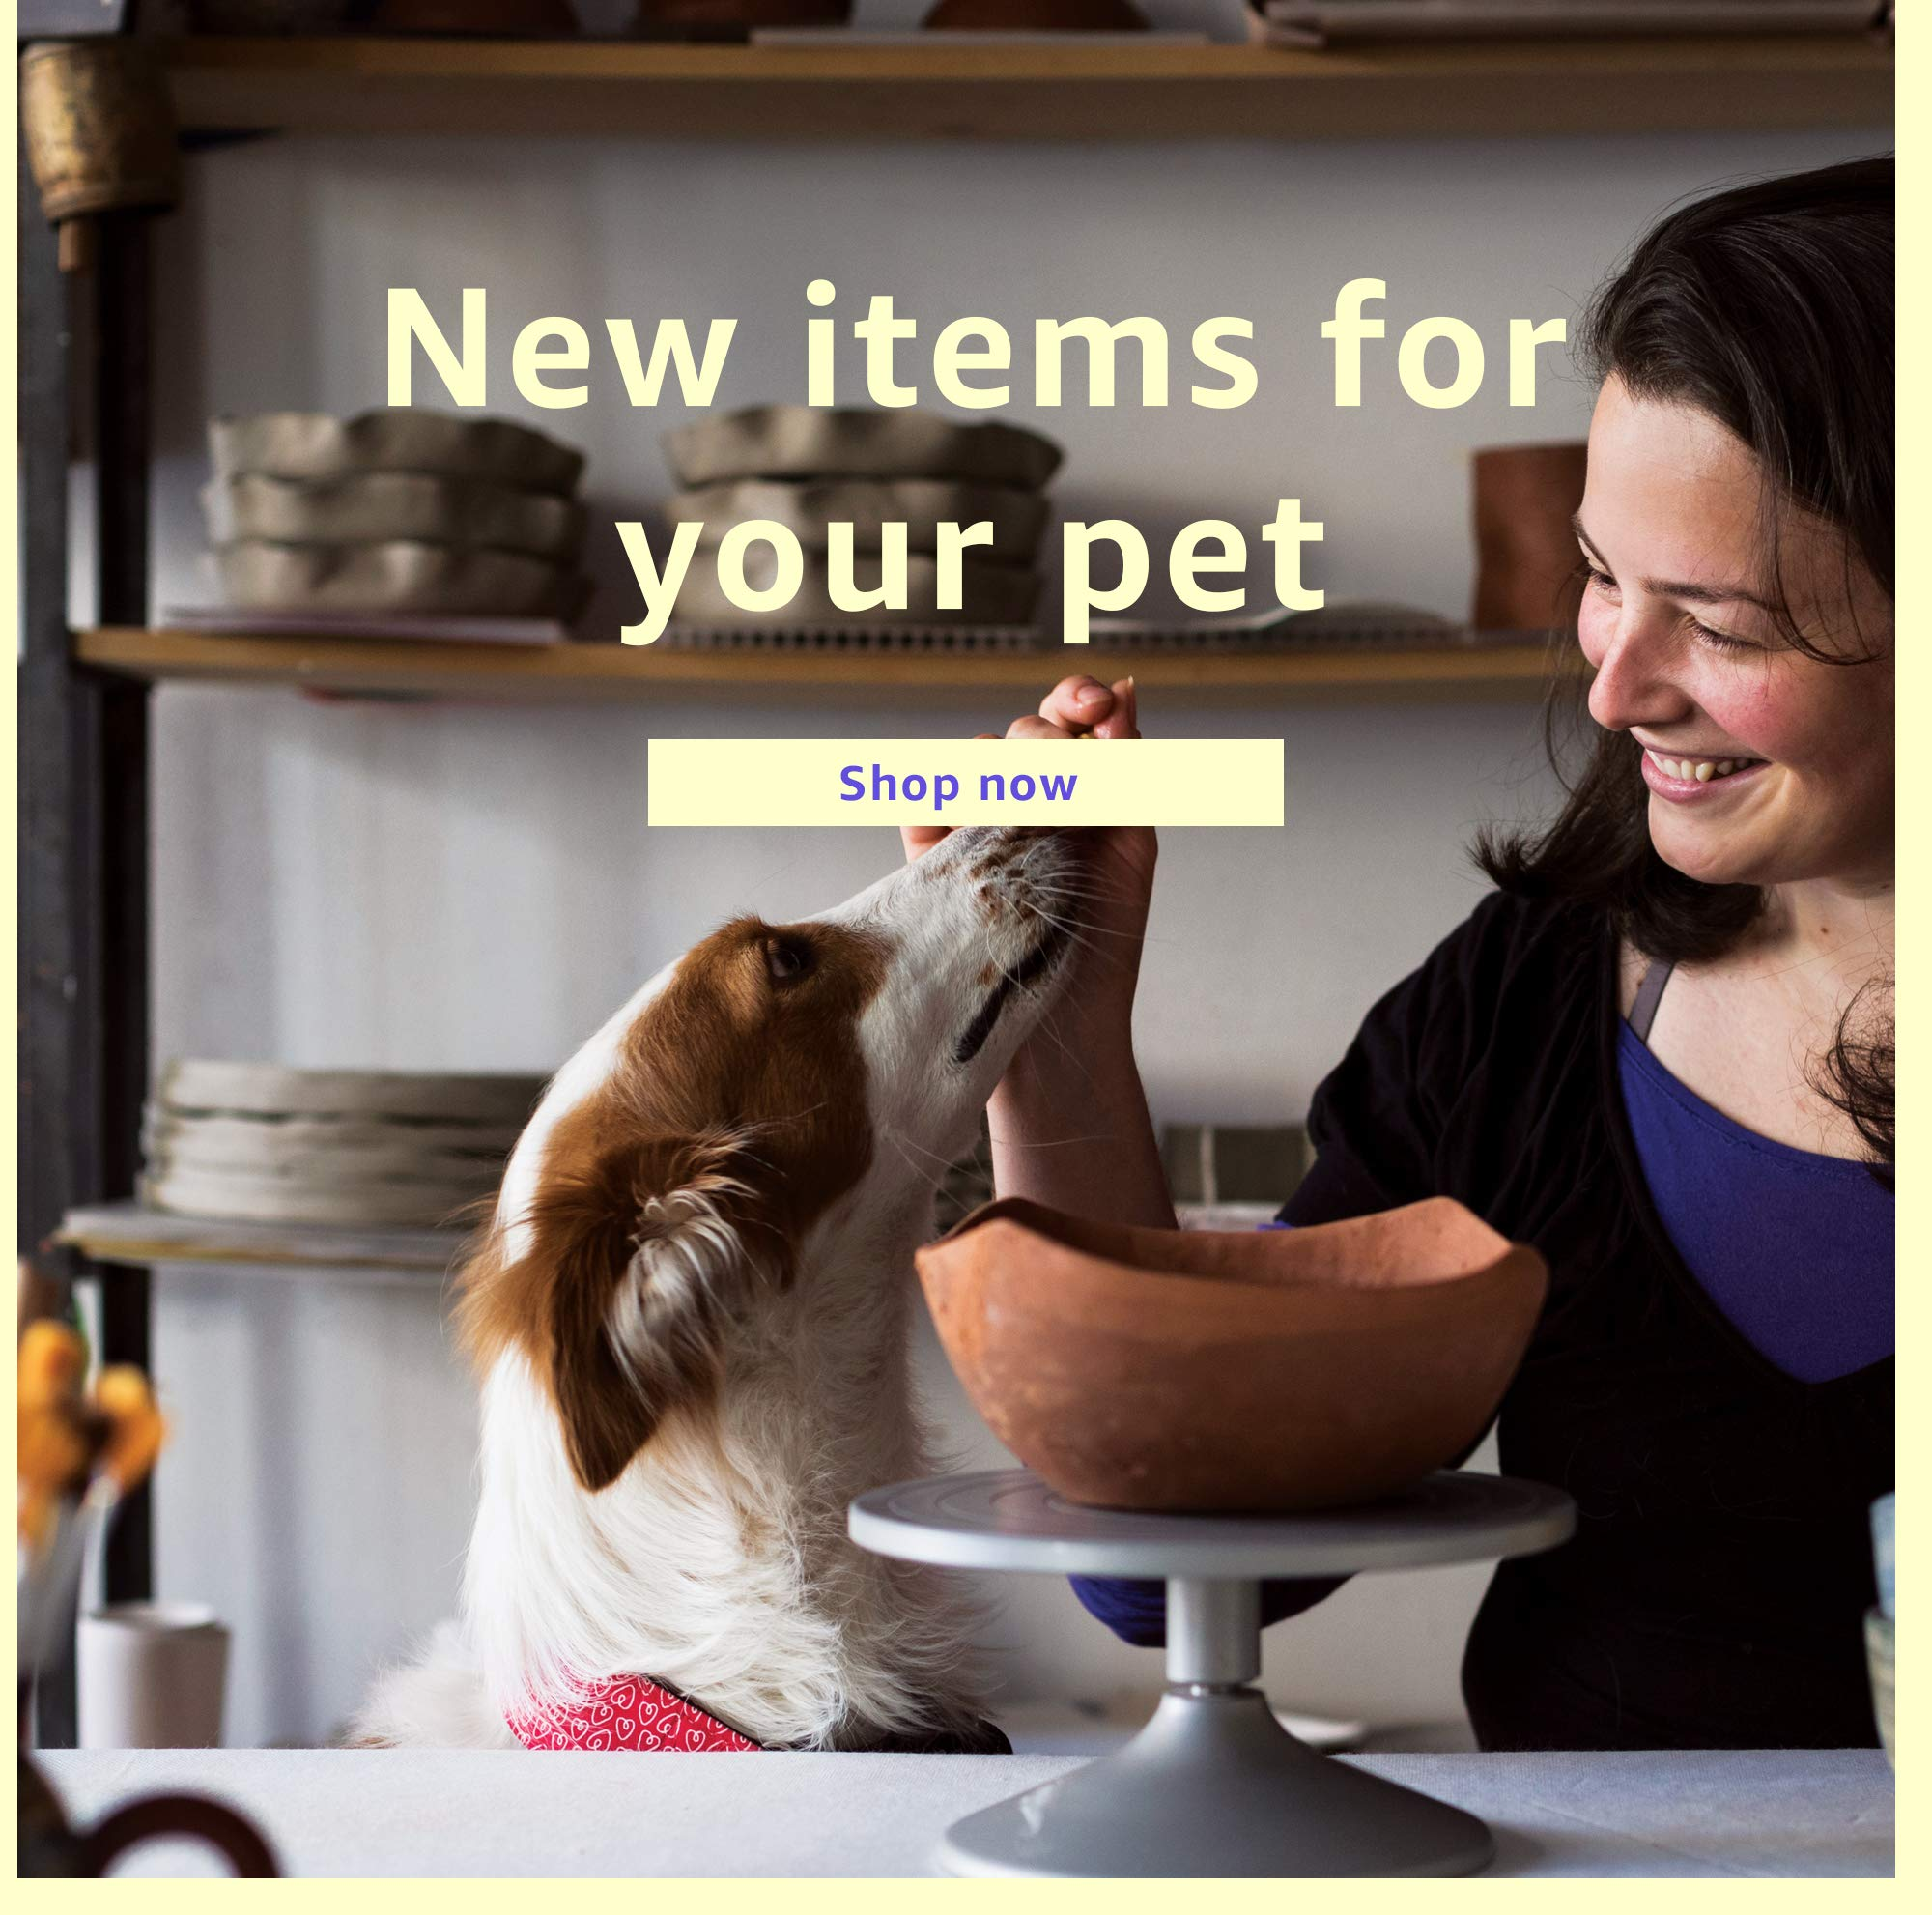 New items for your pet